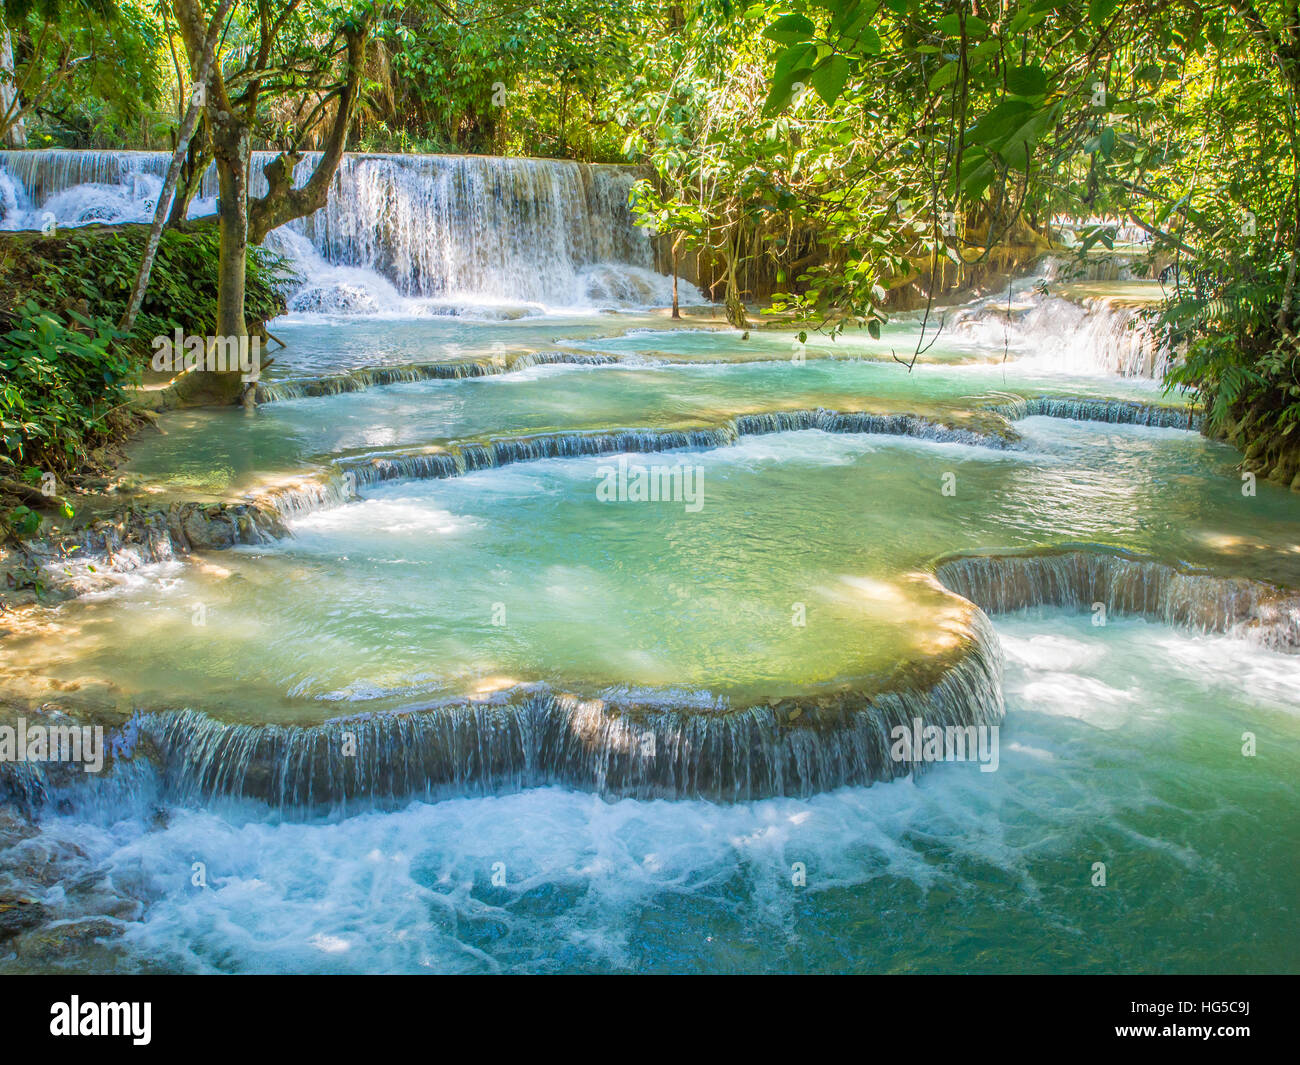 Keang Si cascate, vicino a Luang Prabang, Laos, Indocina, Asia sud-orientale, Asia Immagini Stock